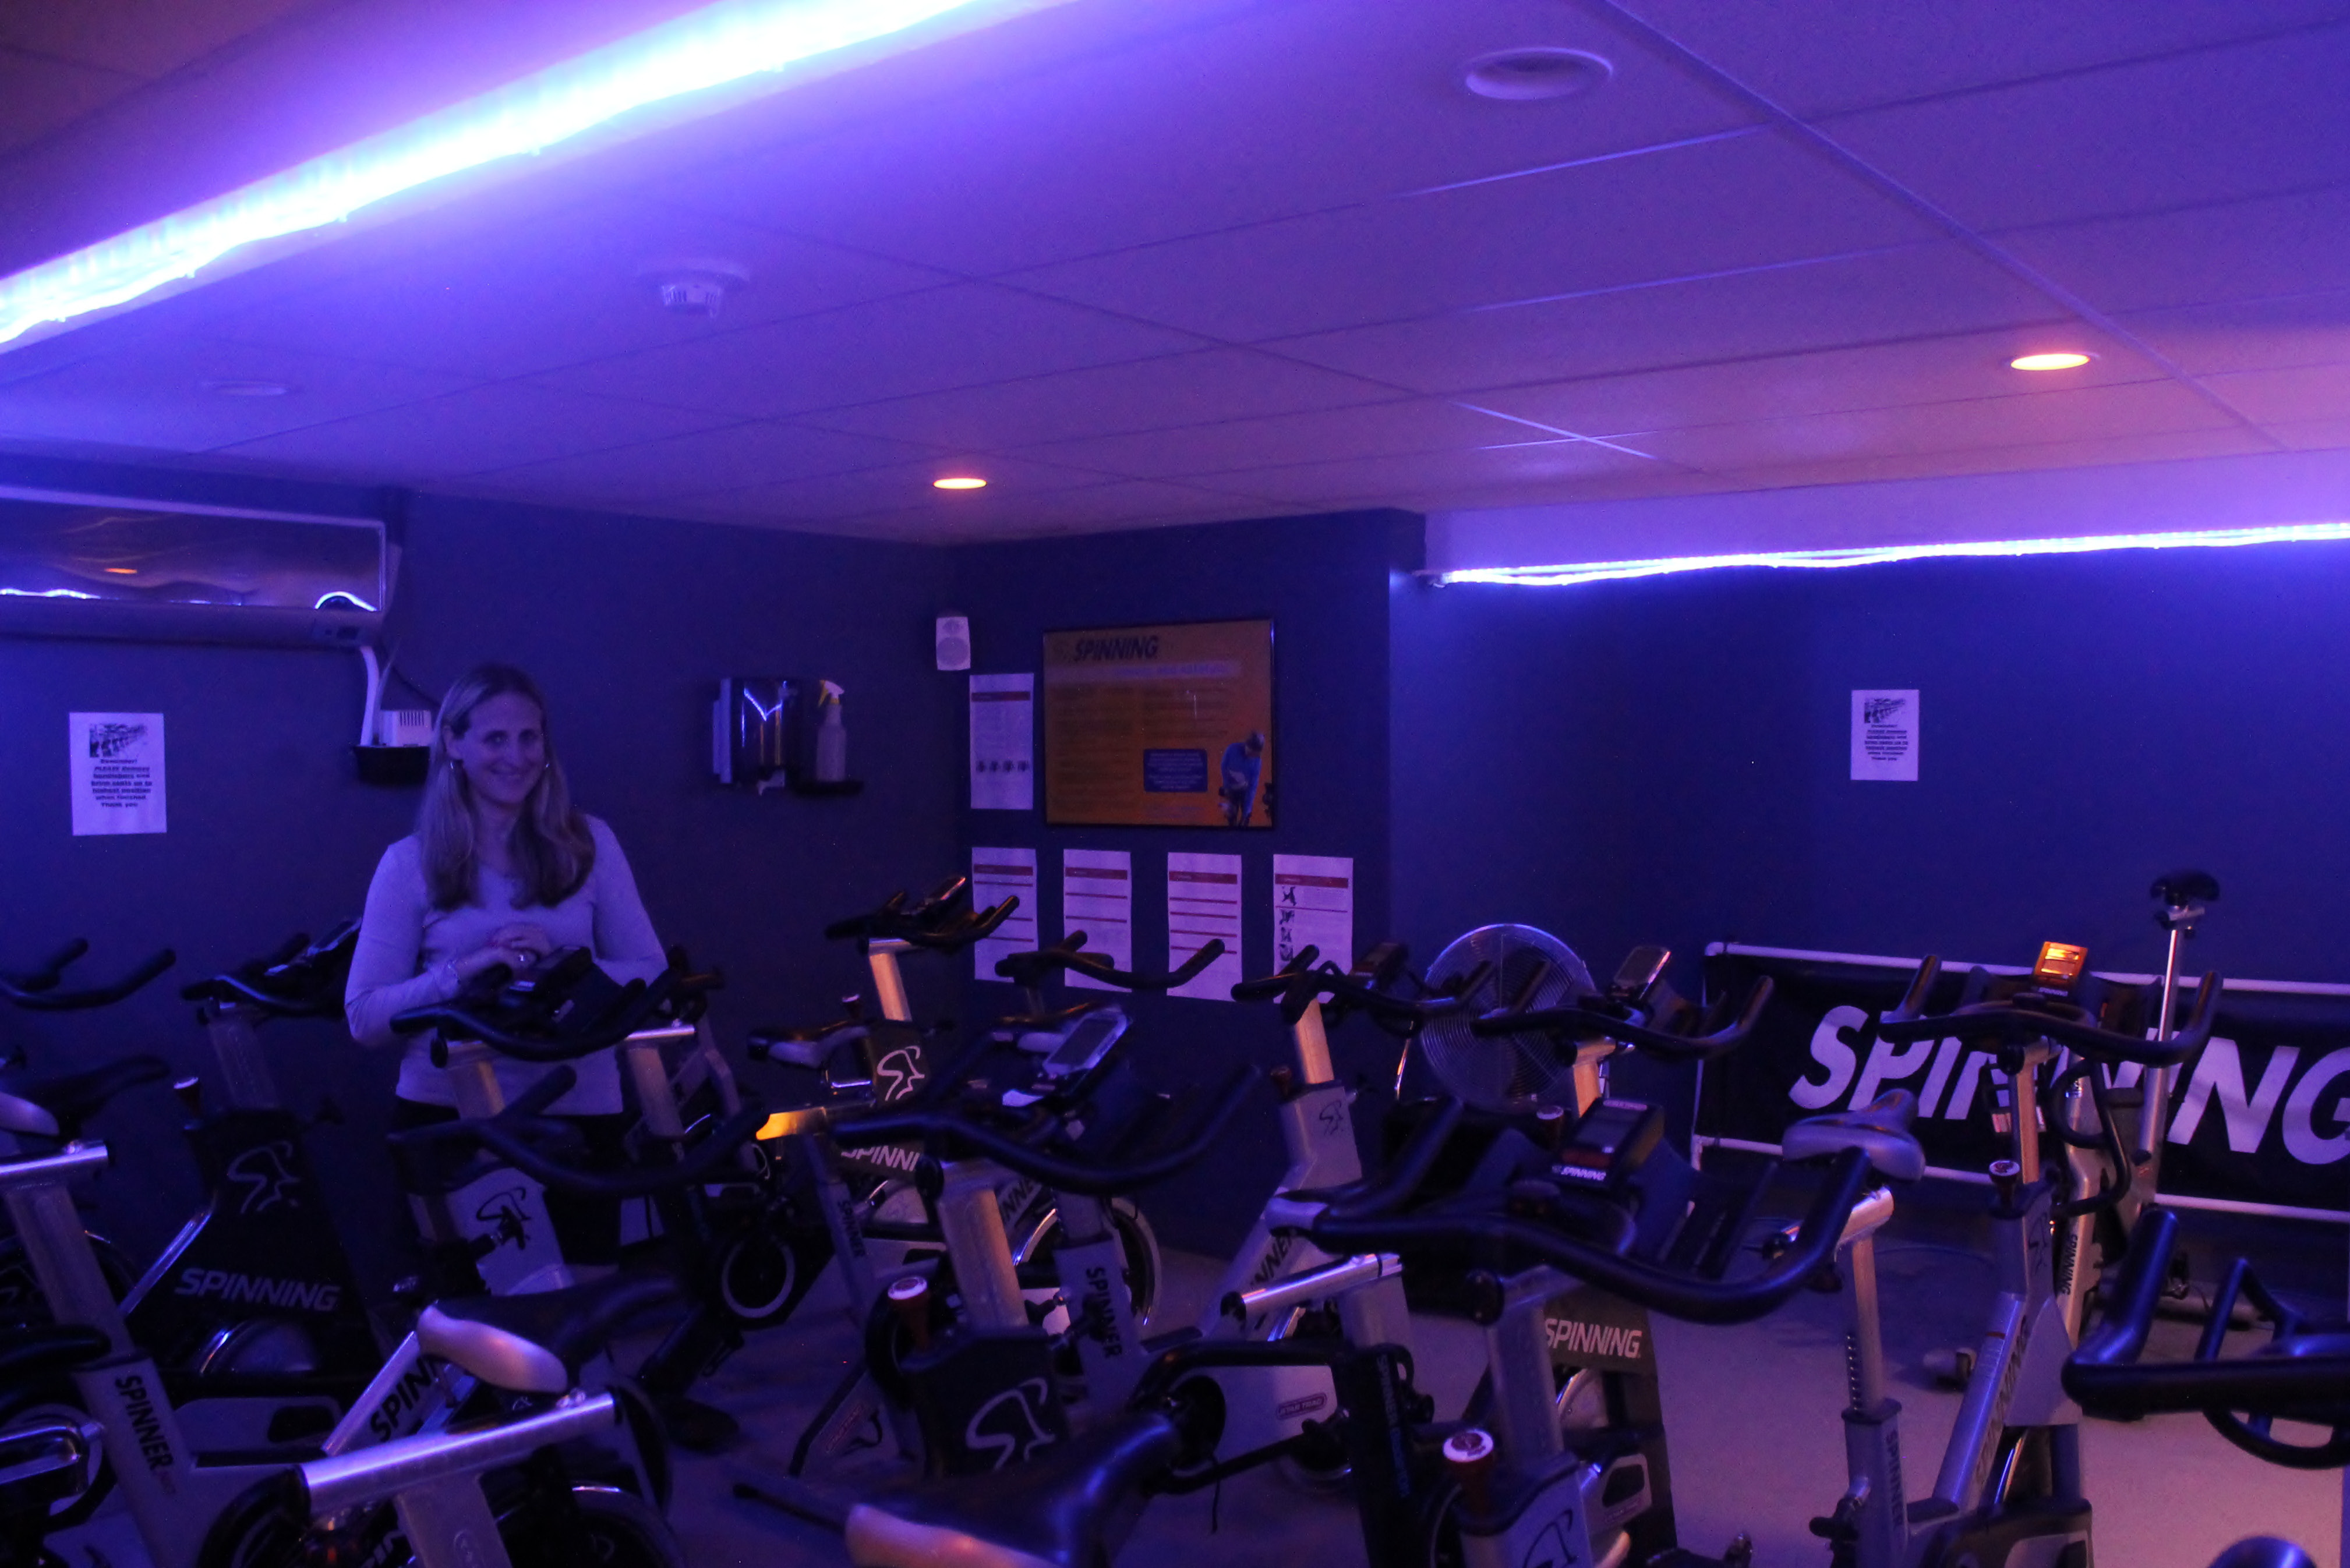 The durham fitness gym will hold its u cpedal for pinku d event on